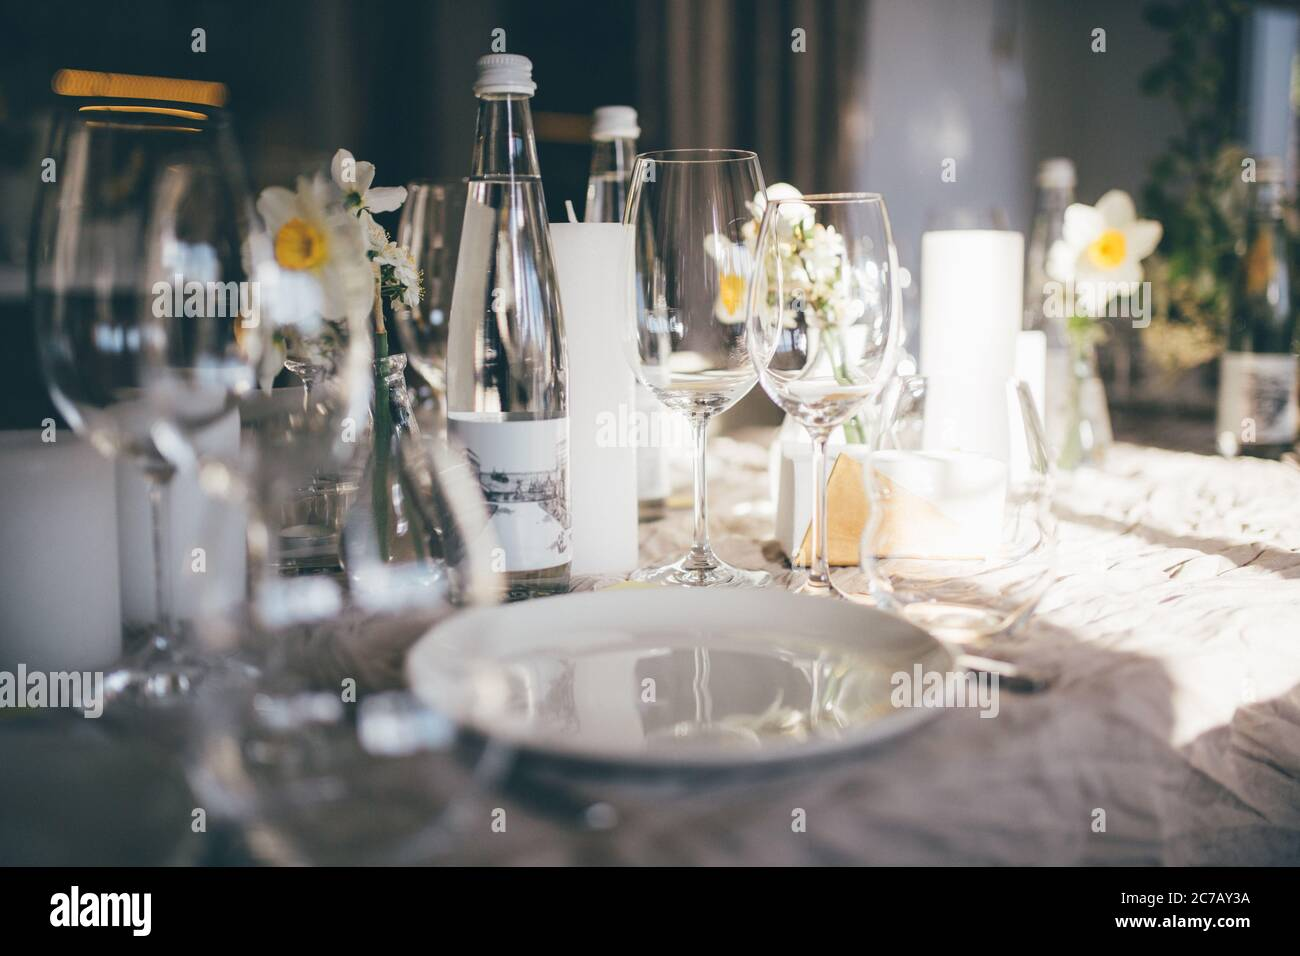 Table Setting For Dinner In Restaurant On The Sunset Served Wedding Table With Decor As Candles Flower Arrangements Wine Glasses Water Stock Photo Alamy